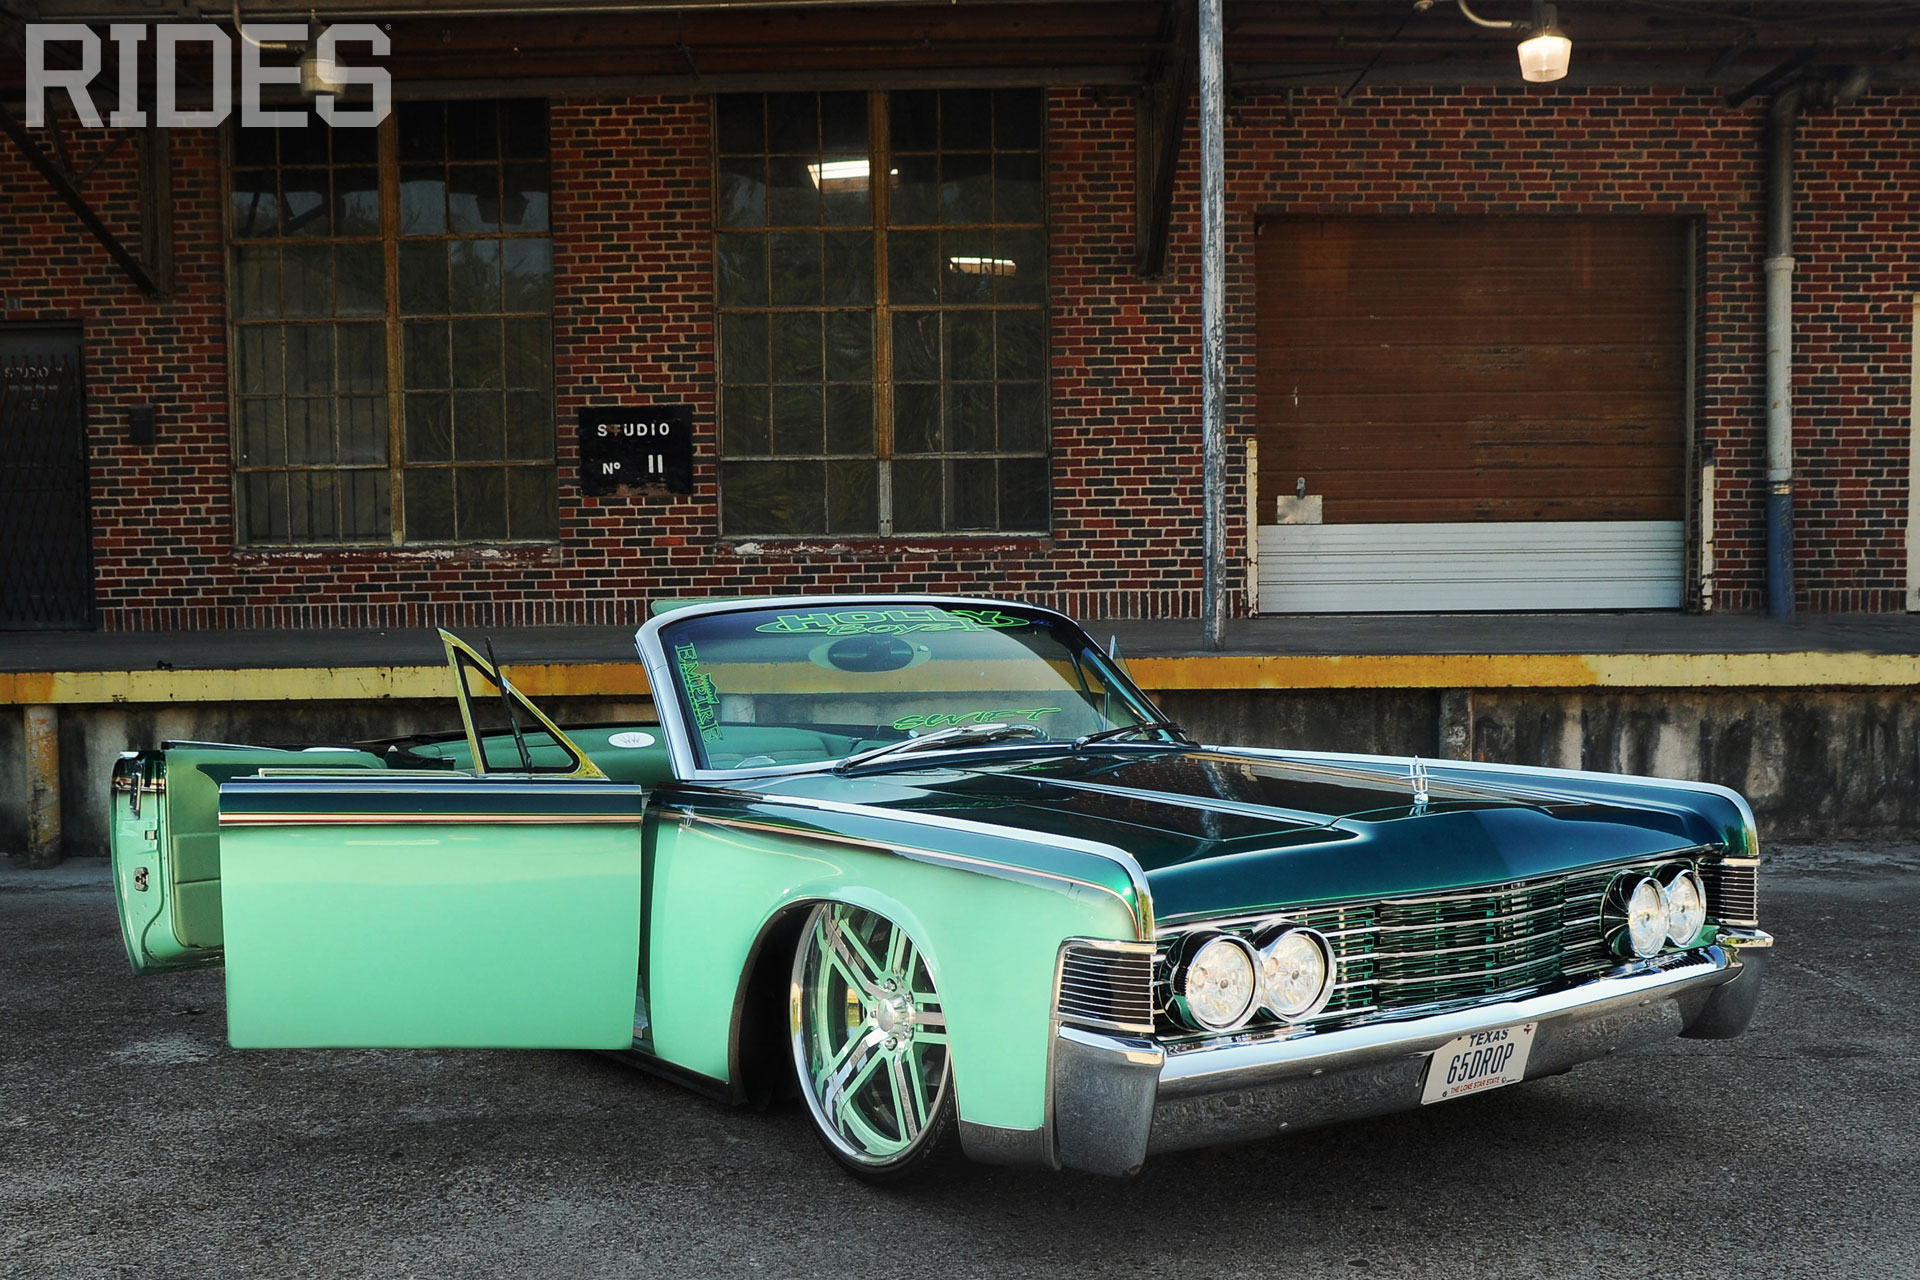 rides cars 1965 '65 lincoln continental wallpaper